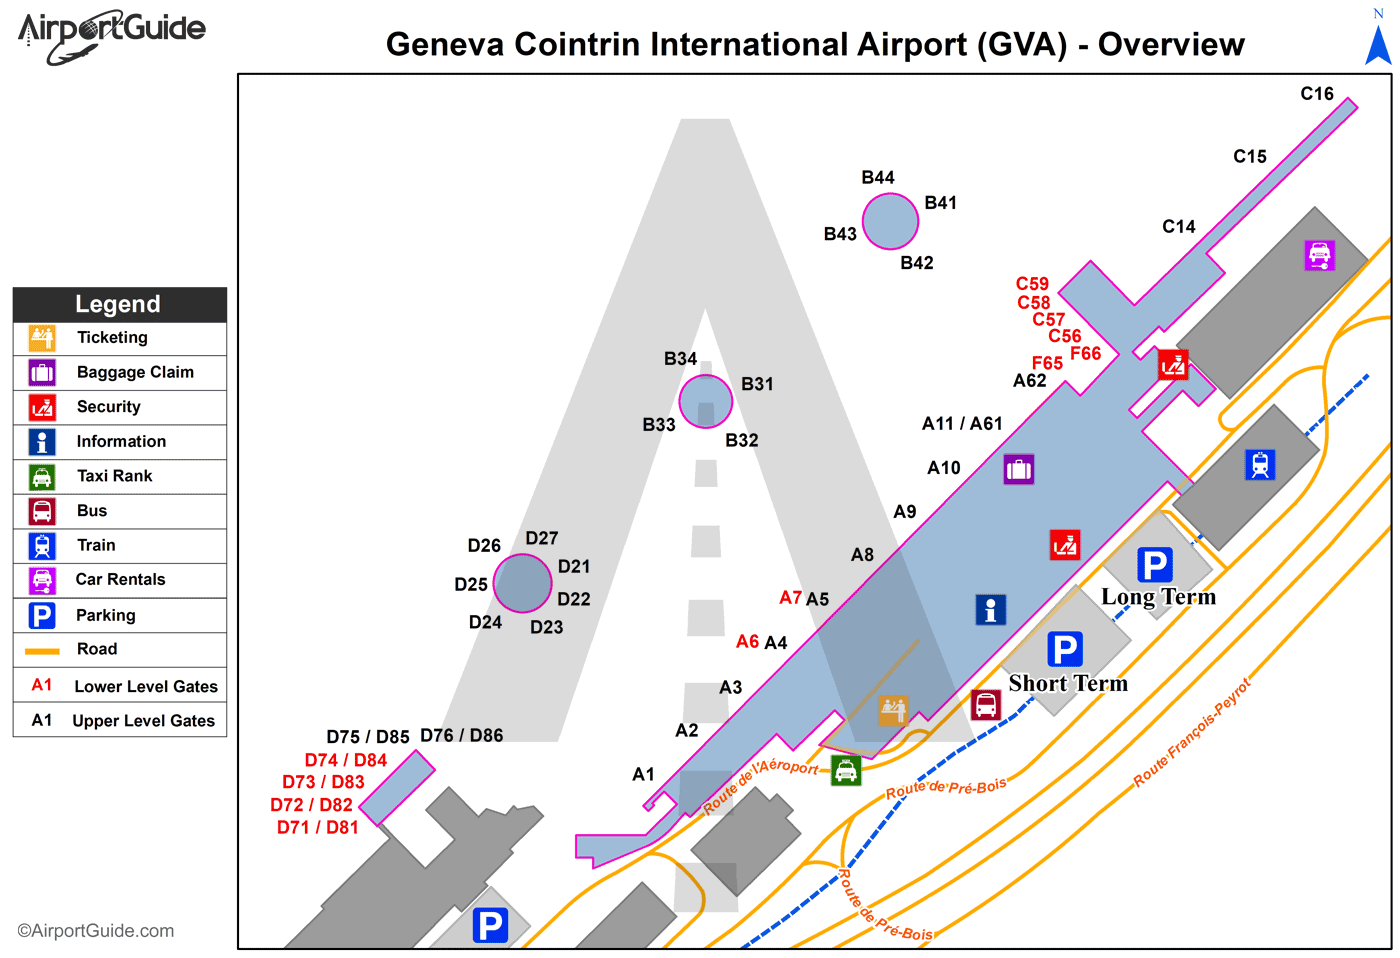 google maps navigation with Geneva Cointrin International Gva Airport Terminal Map on Groundhopping Ground as well Index moreover sport Lichtenegger likewise Poljud Stadium likewise Maps.